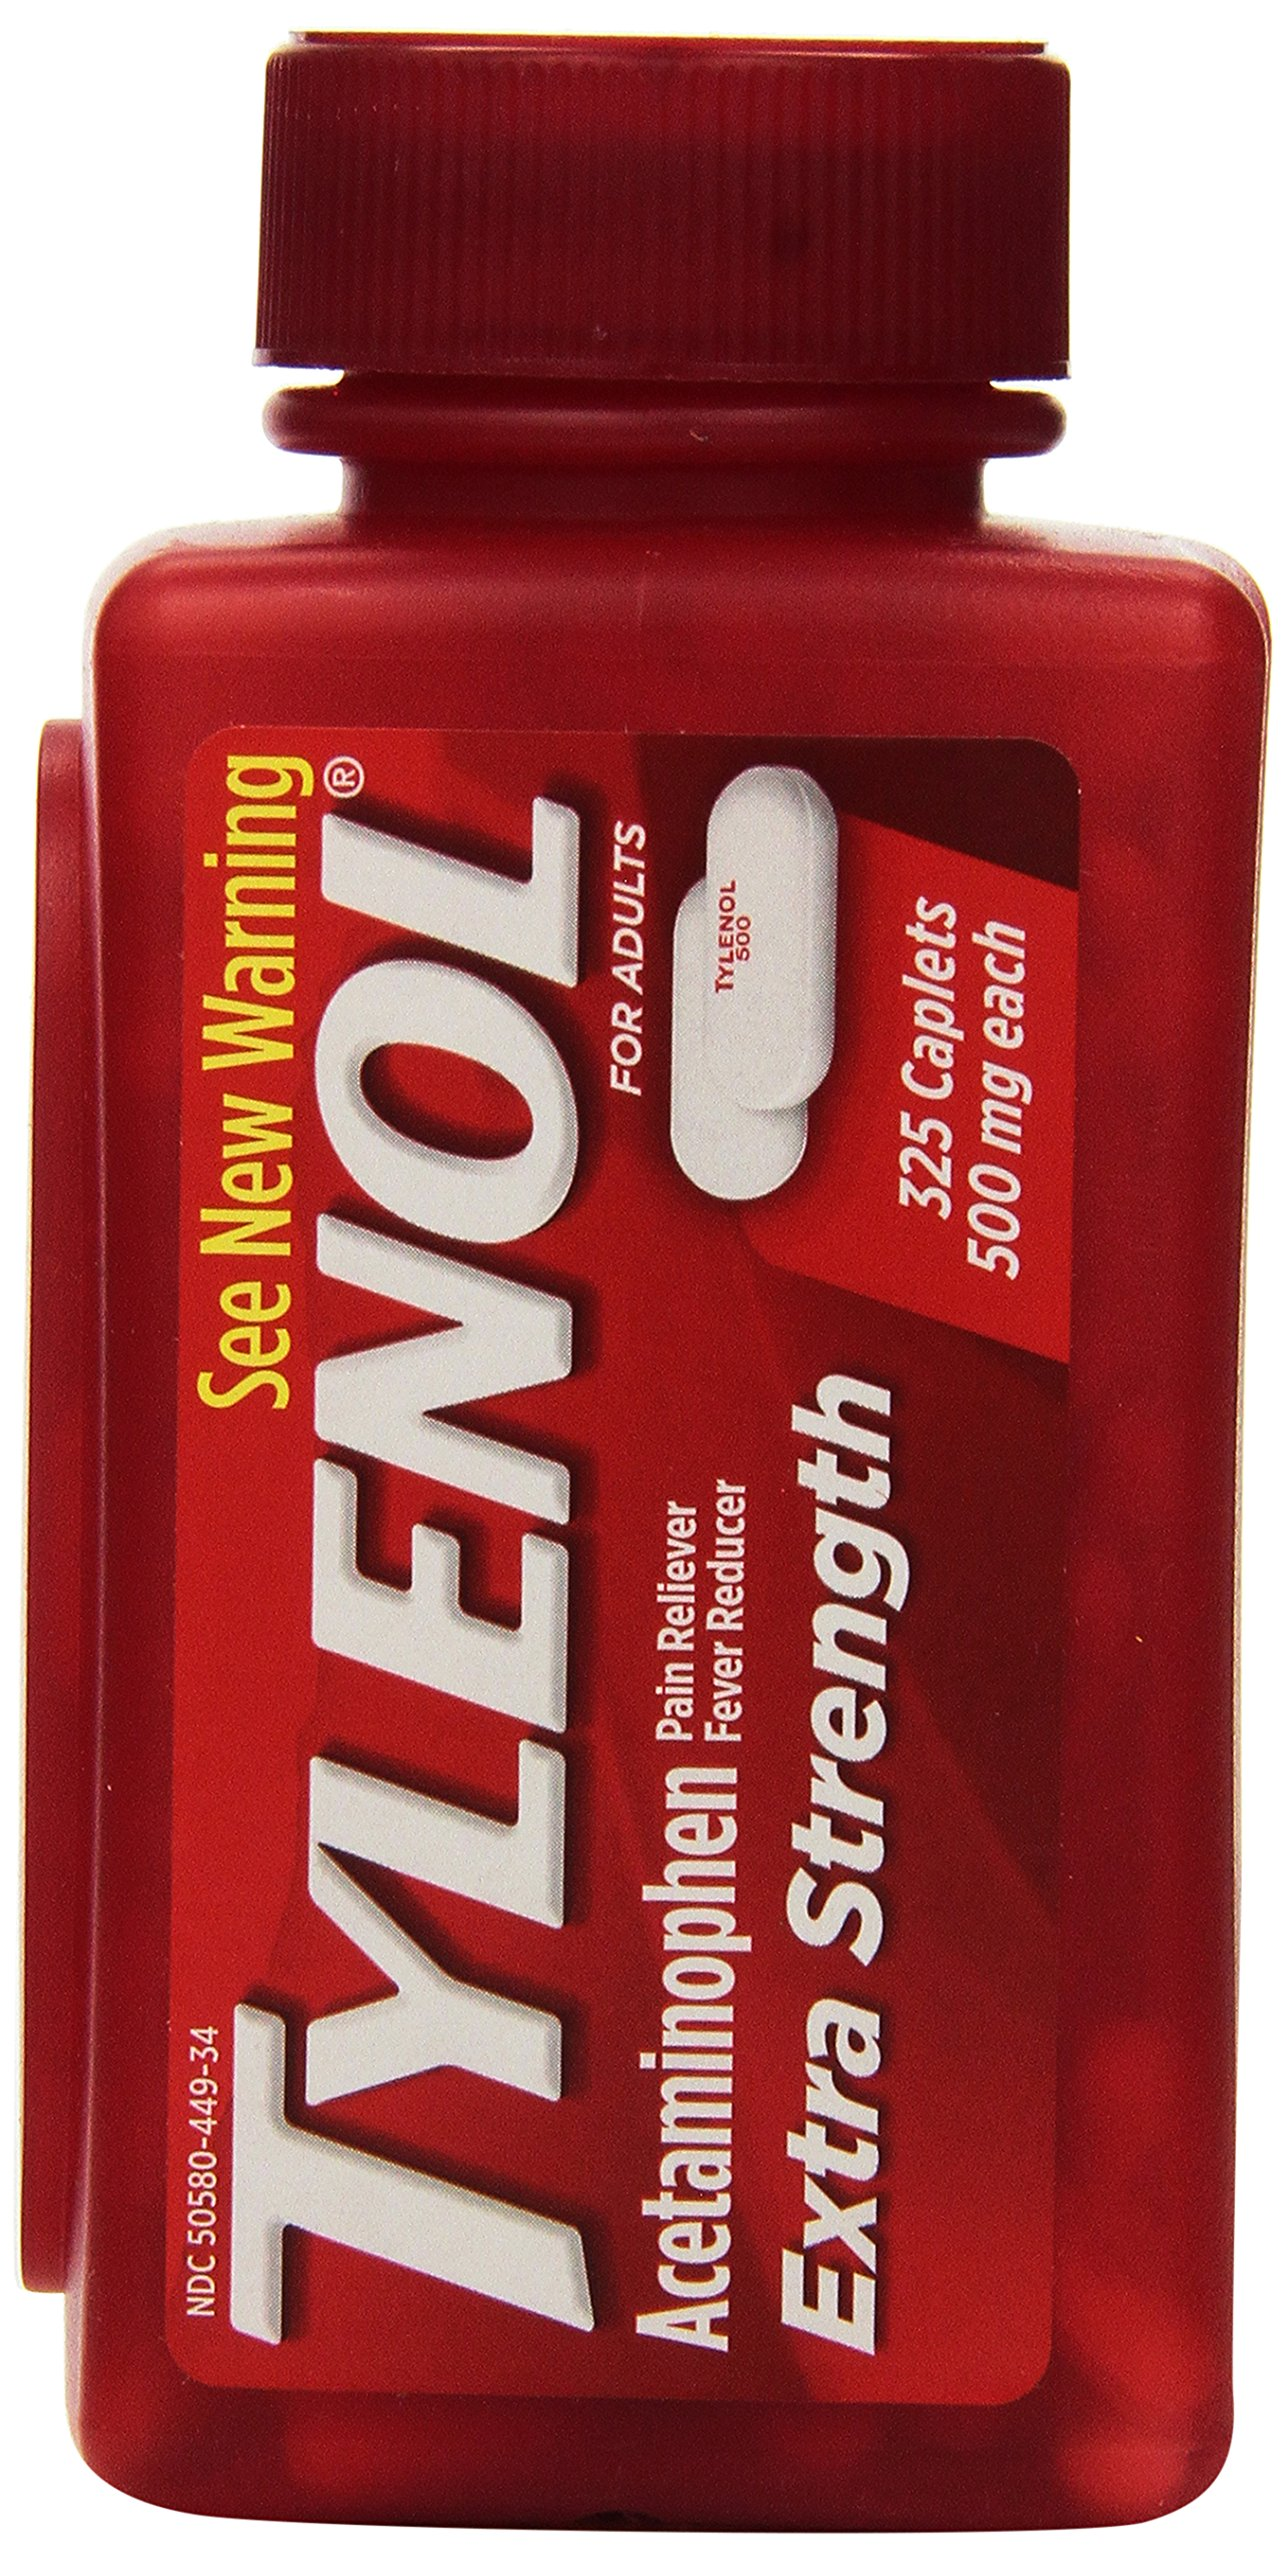 Amazon.com: Tylenol Extra Strength Acetaminophen 500 Mg 325 ...